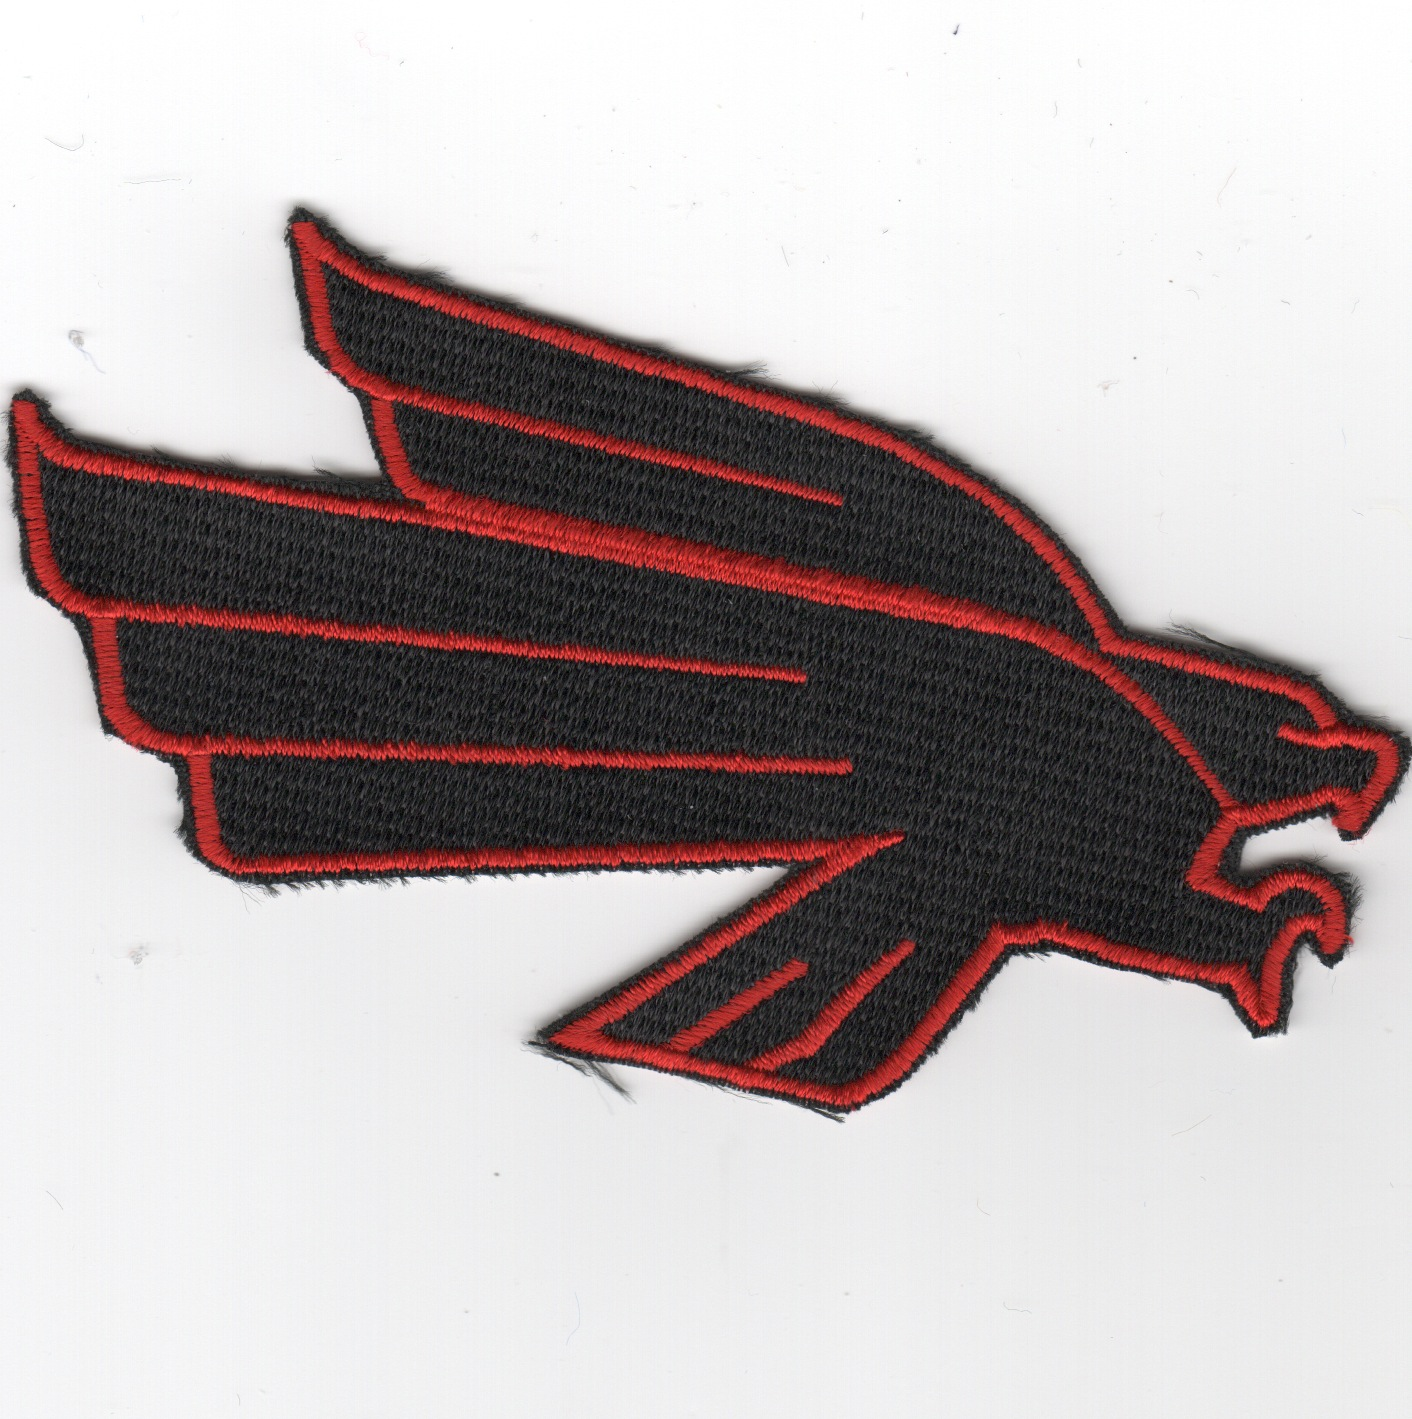 HSC-26 Hawk Patch (Black)